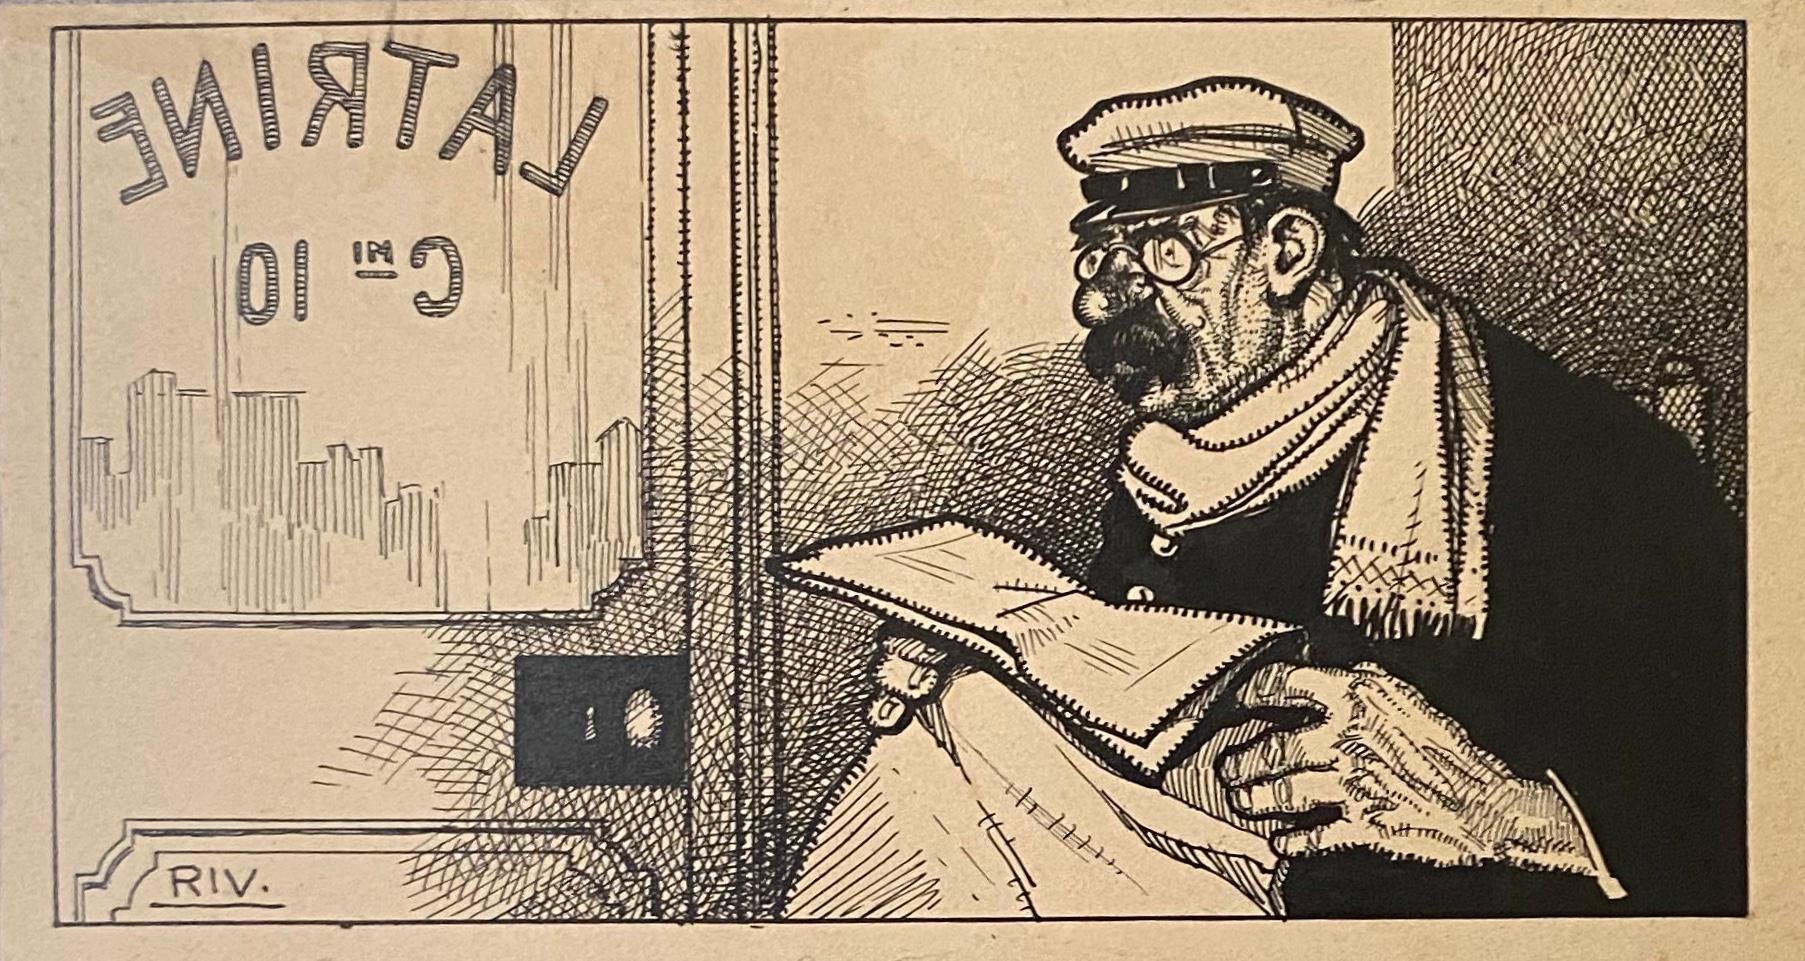 Passenger Train - China Ink by Carlo Rivalta - Early 20th Century